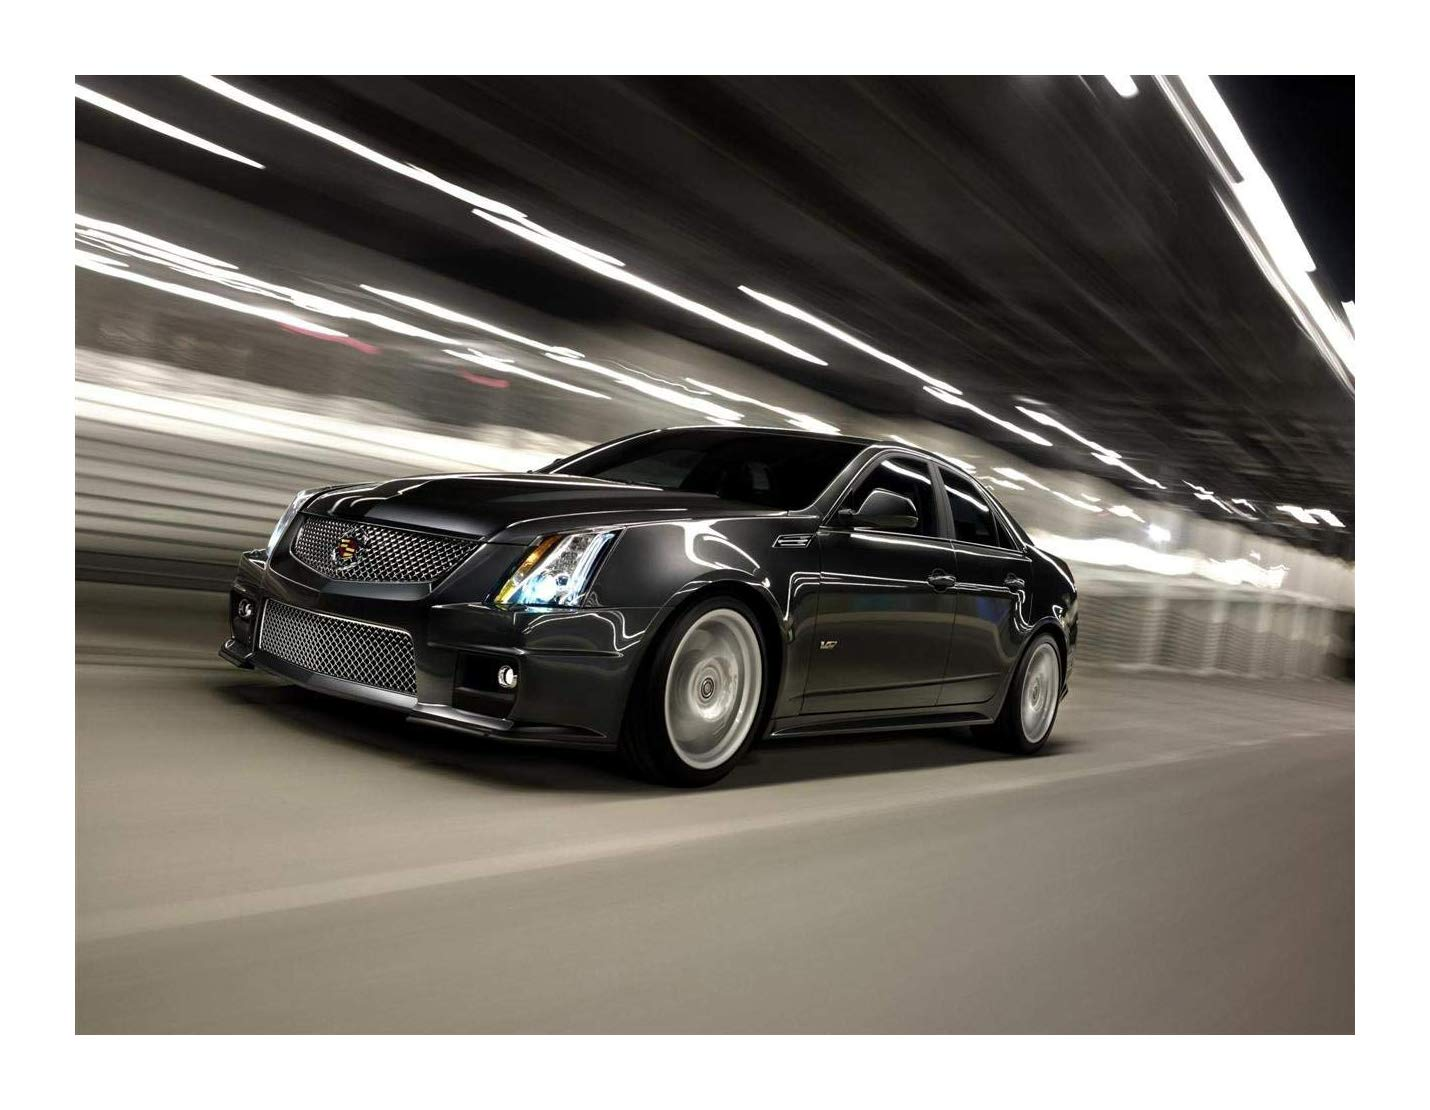 Cadillac CTS-V Sport Sedan (2011) Car Art Poster Print on 10 mil Archival  Satin Paper Black Front Side Speed View 20